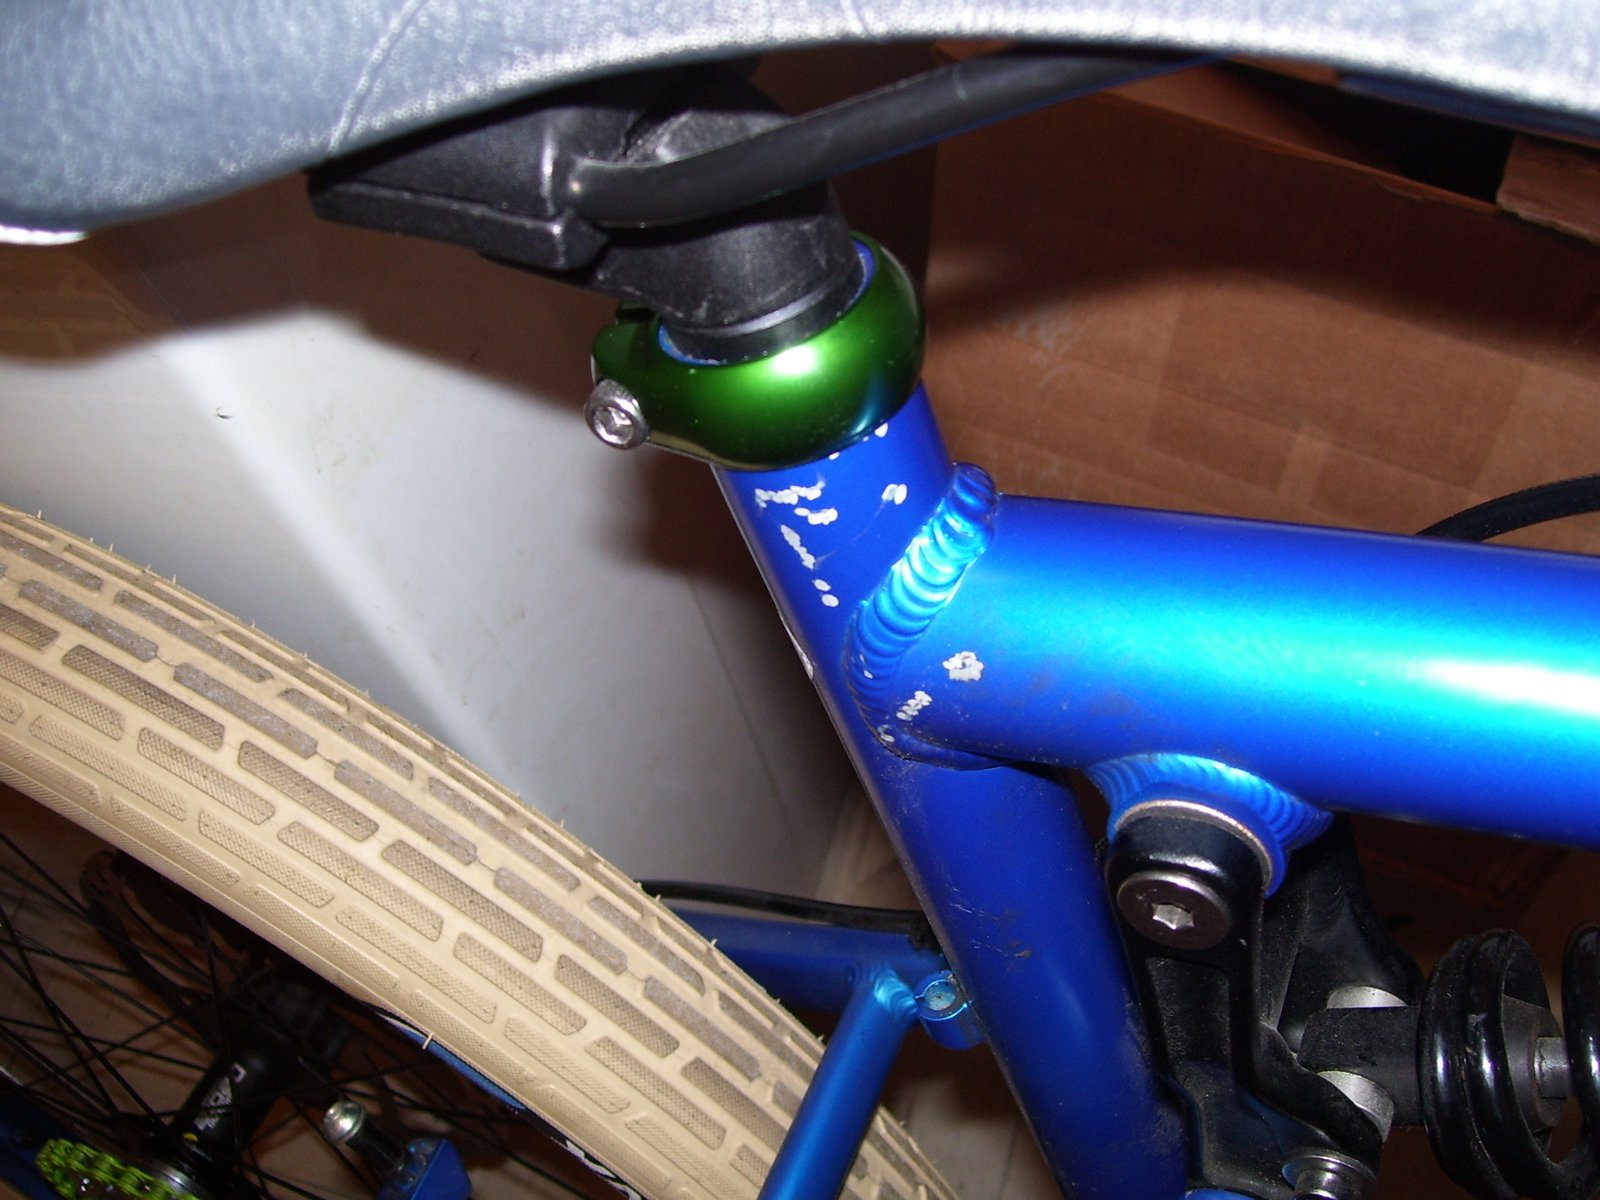 Surly seat clamp